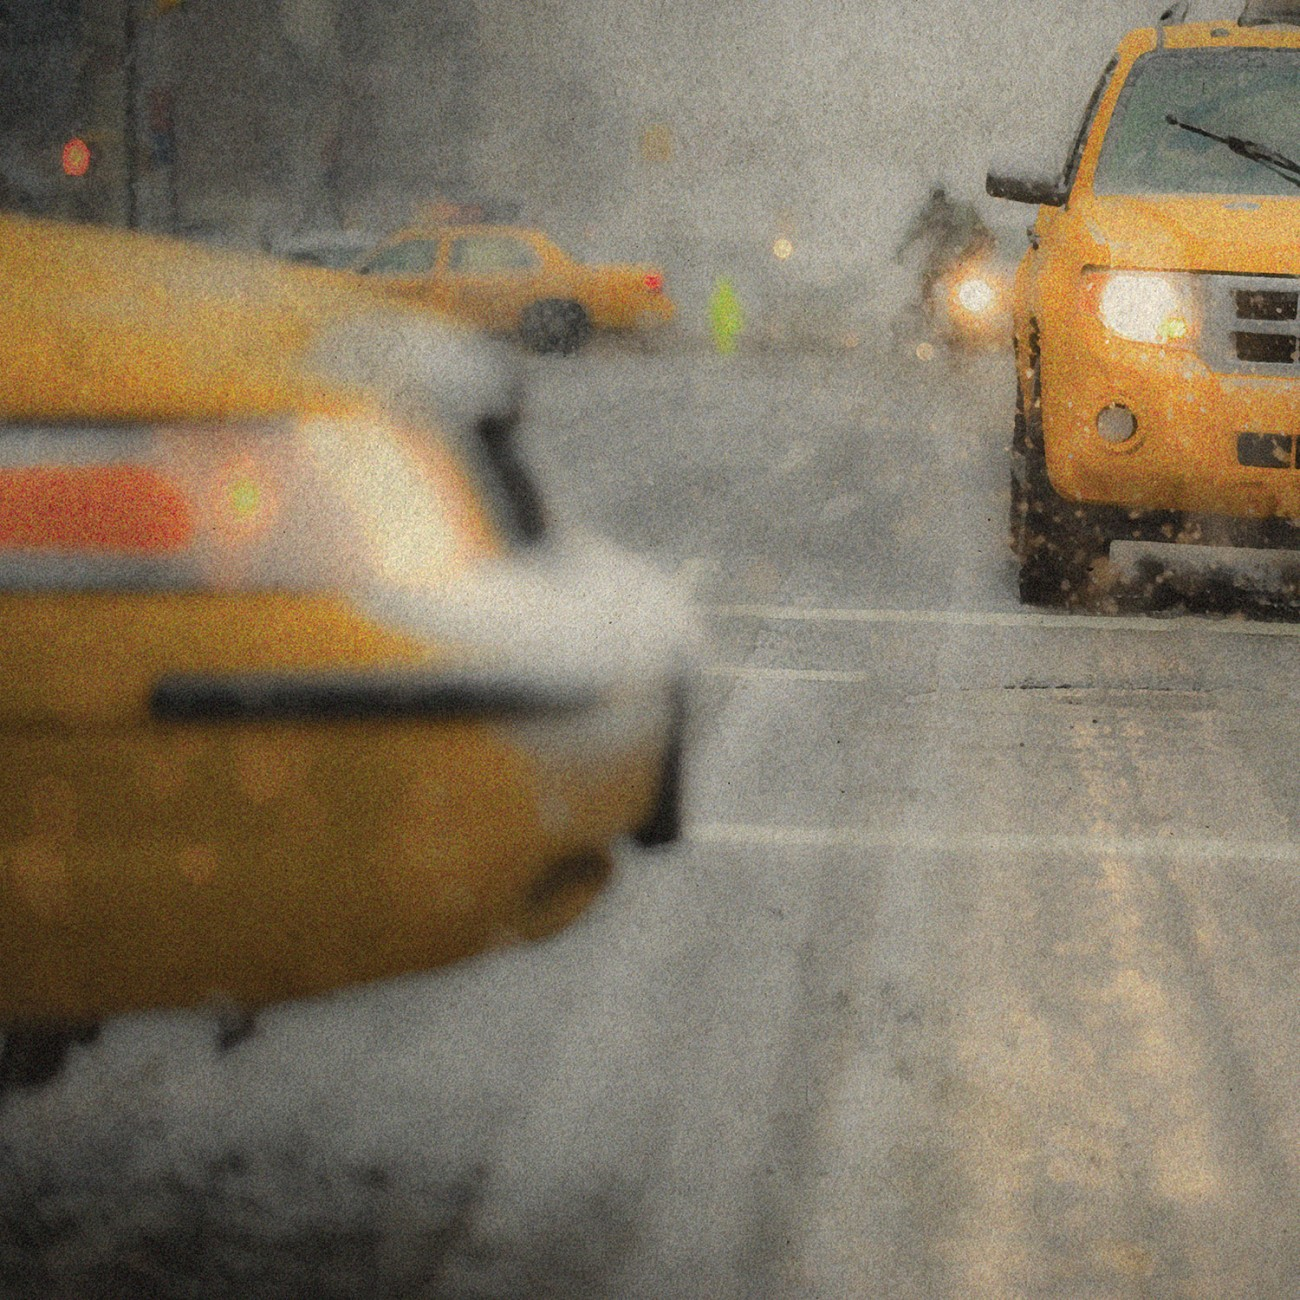 Taxis in snow, New York, 2010